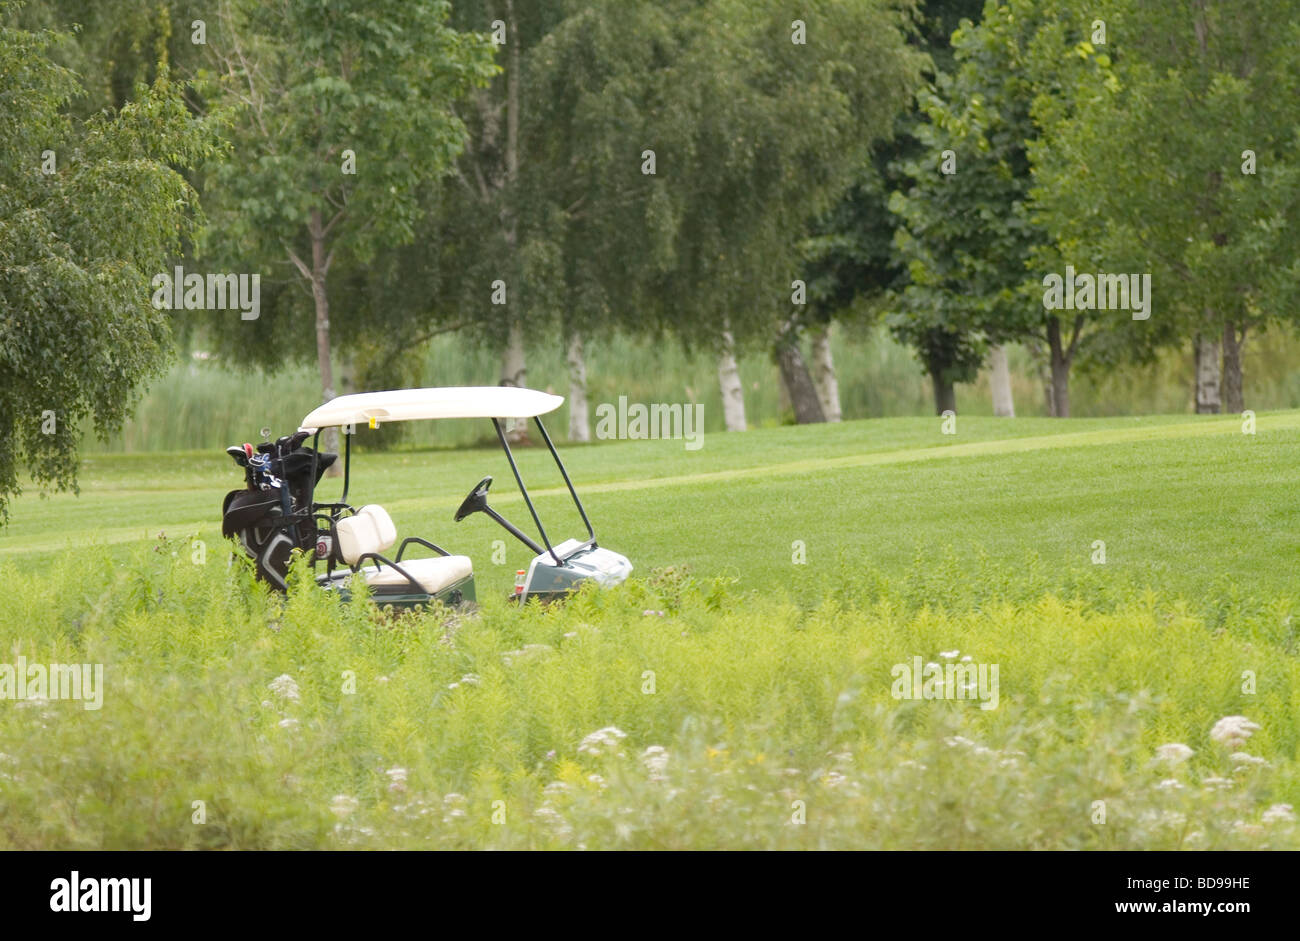 Golf Cart on the Fairway. Transportation - Stock Image